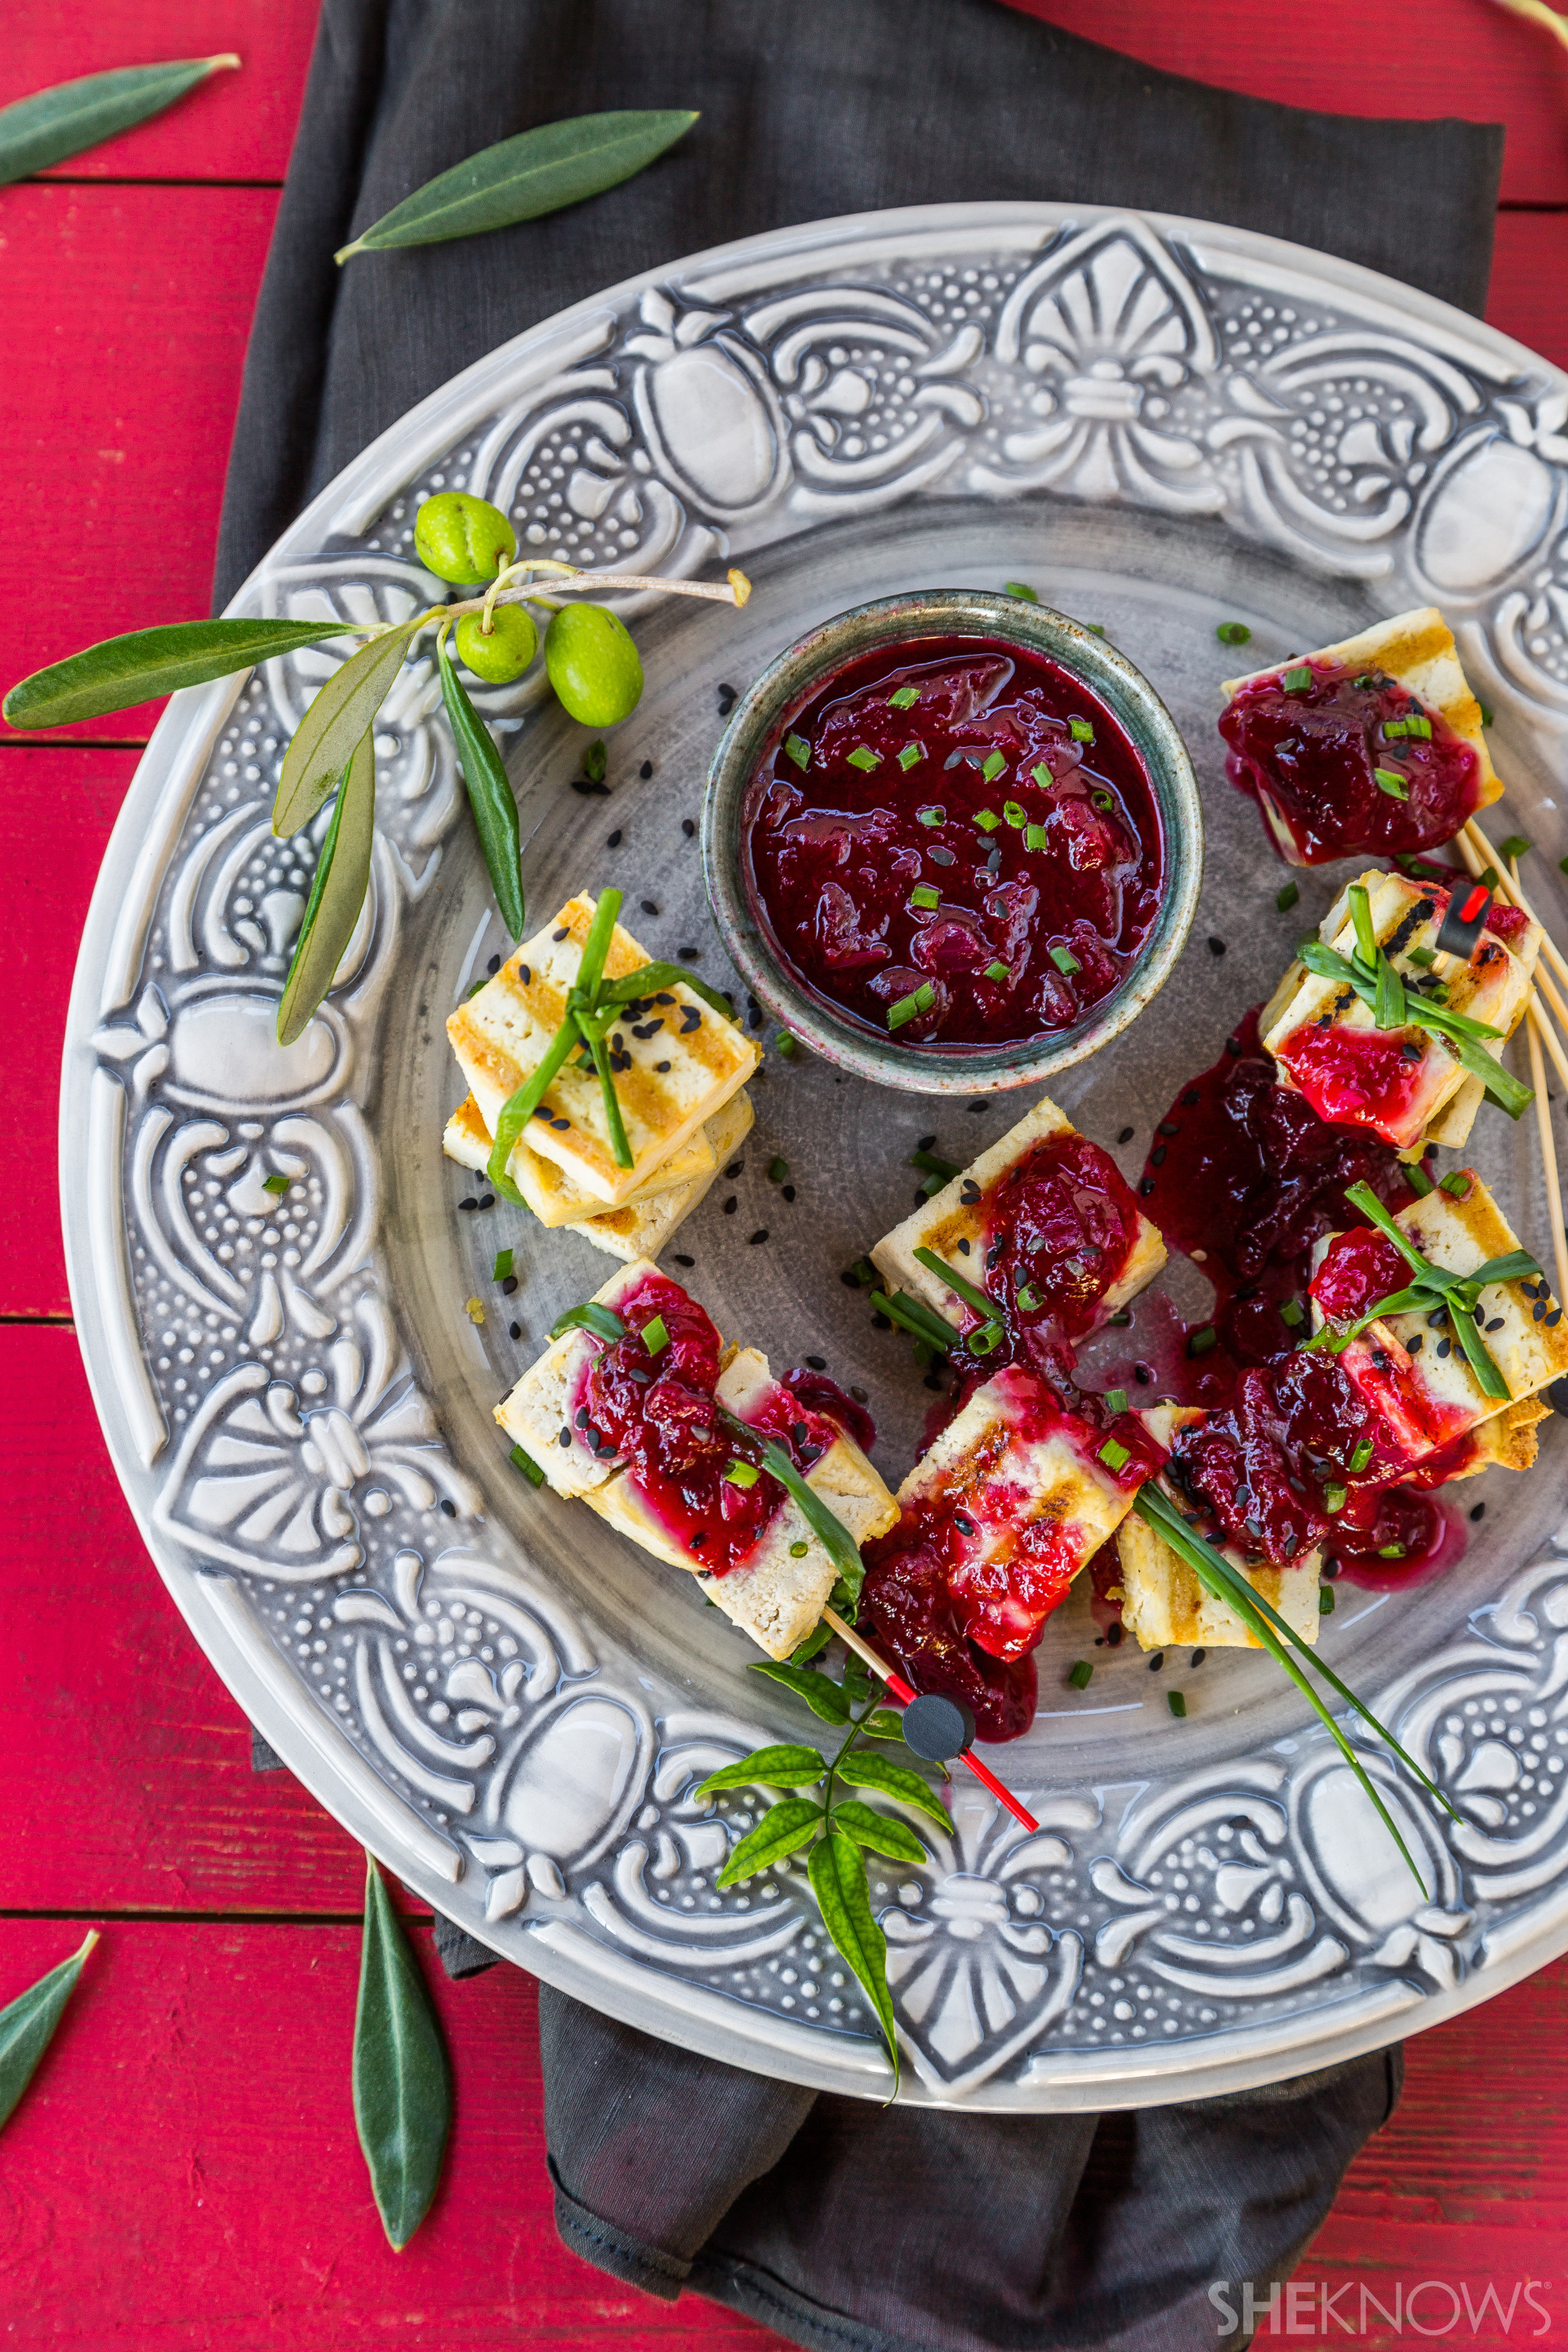 Grilled Tofu with Homemade Plum Sauce